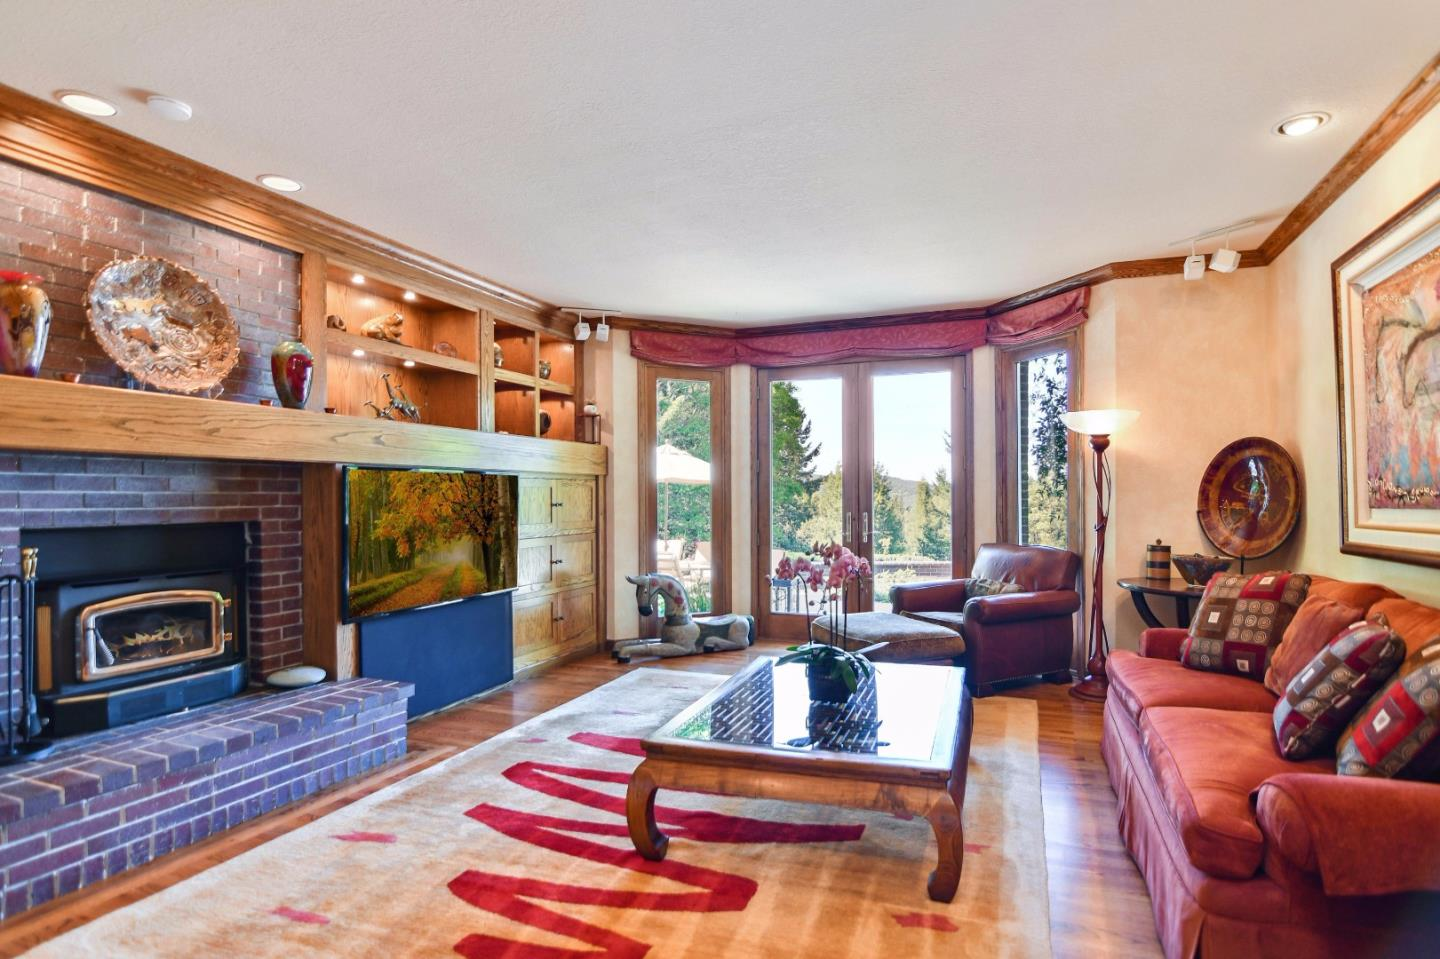 Additional photo for property listing at 20170 Thompson Rd  LOS GATOS, CALIFORNIA 95033